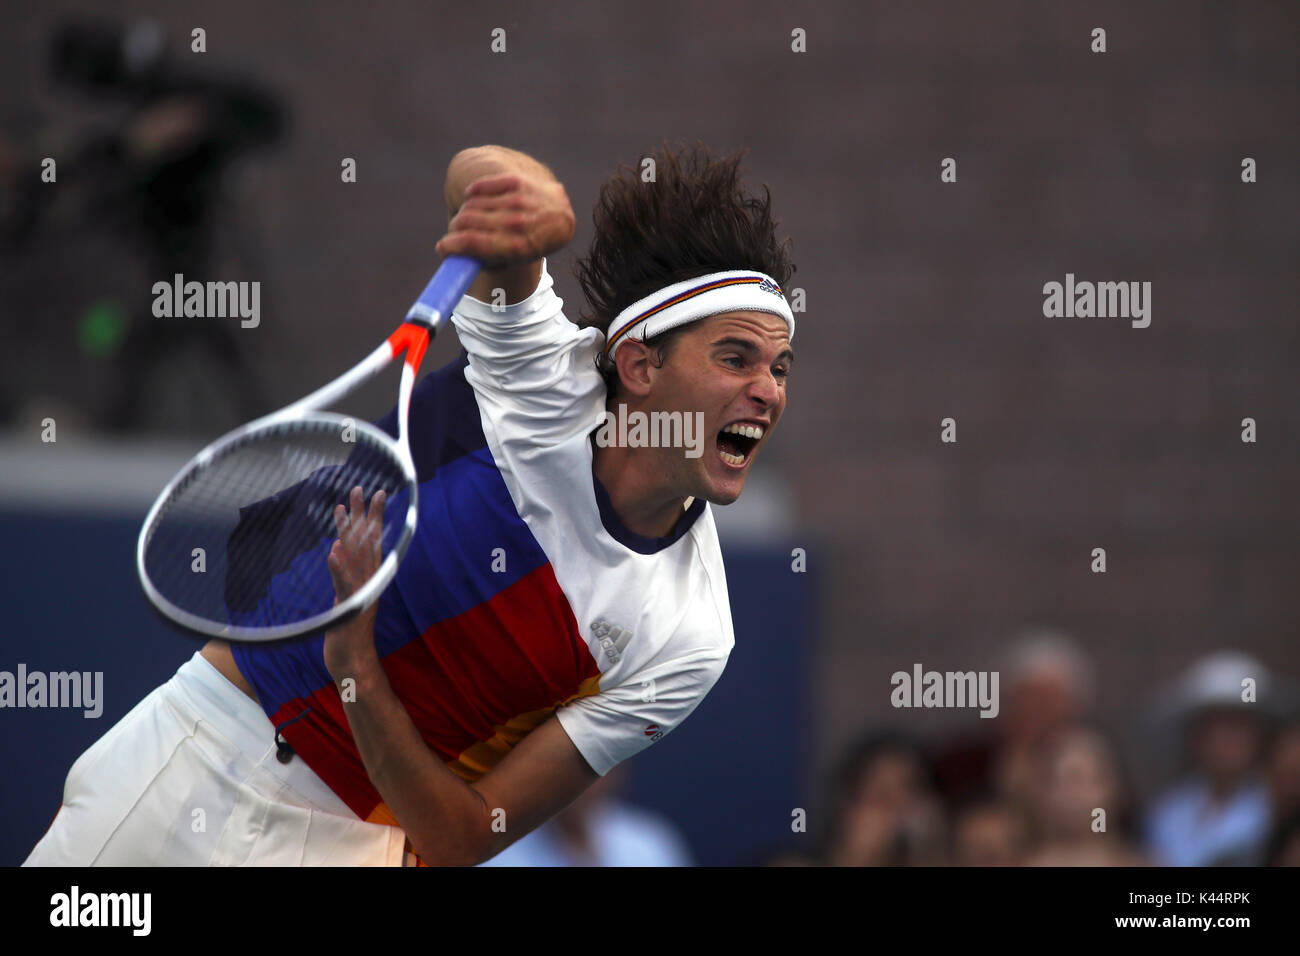 New York, United States. 04th Sep, 2017. US Open Tennis: New York, 4 September, 2017 - number 6 seeded Dominic Thiem - Stock Image